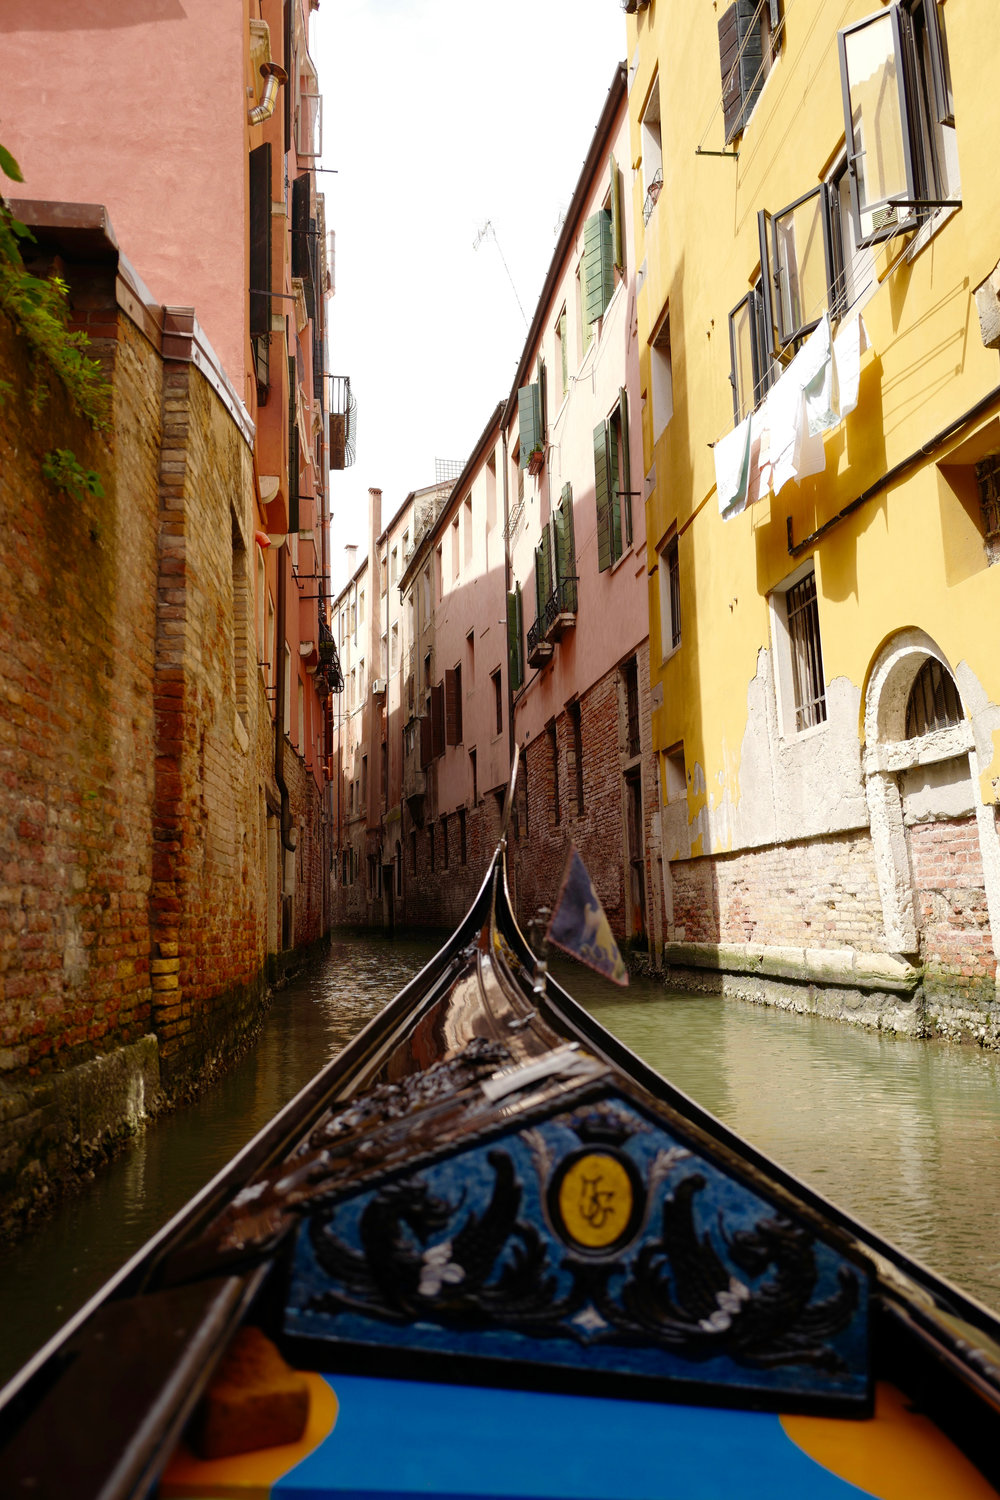 One of the beautiful canals seen only by gondola